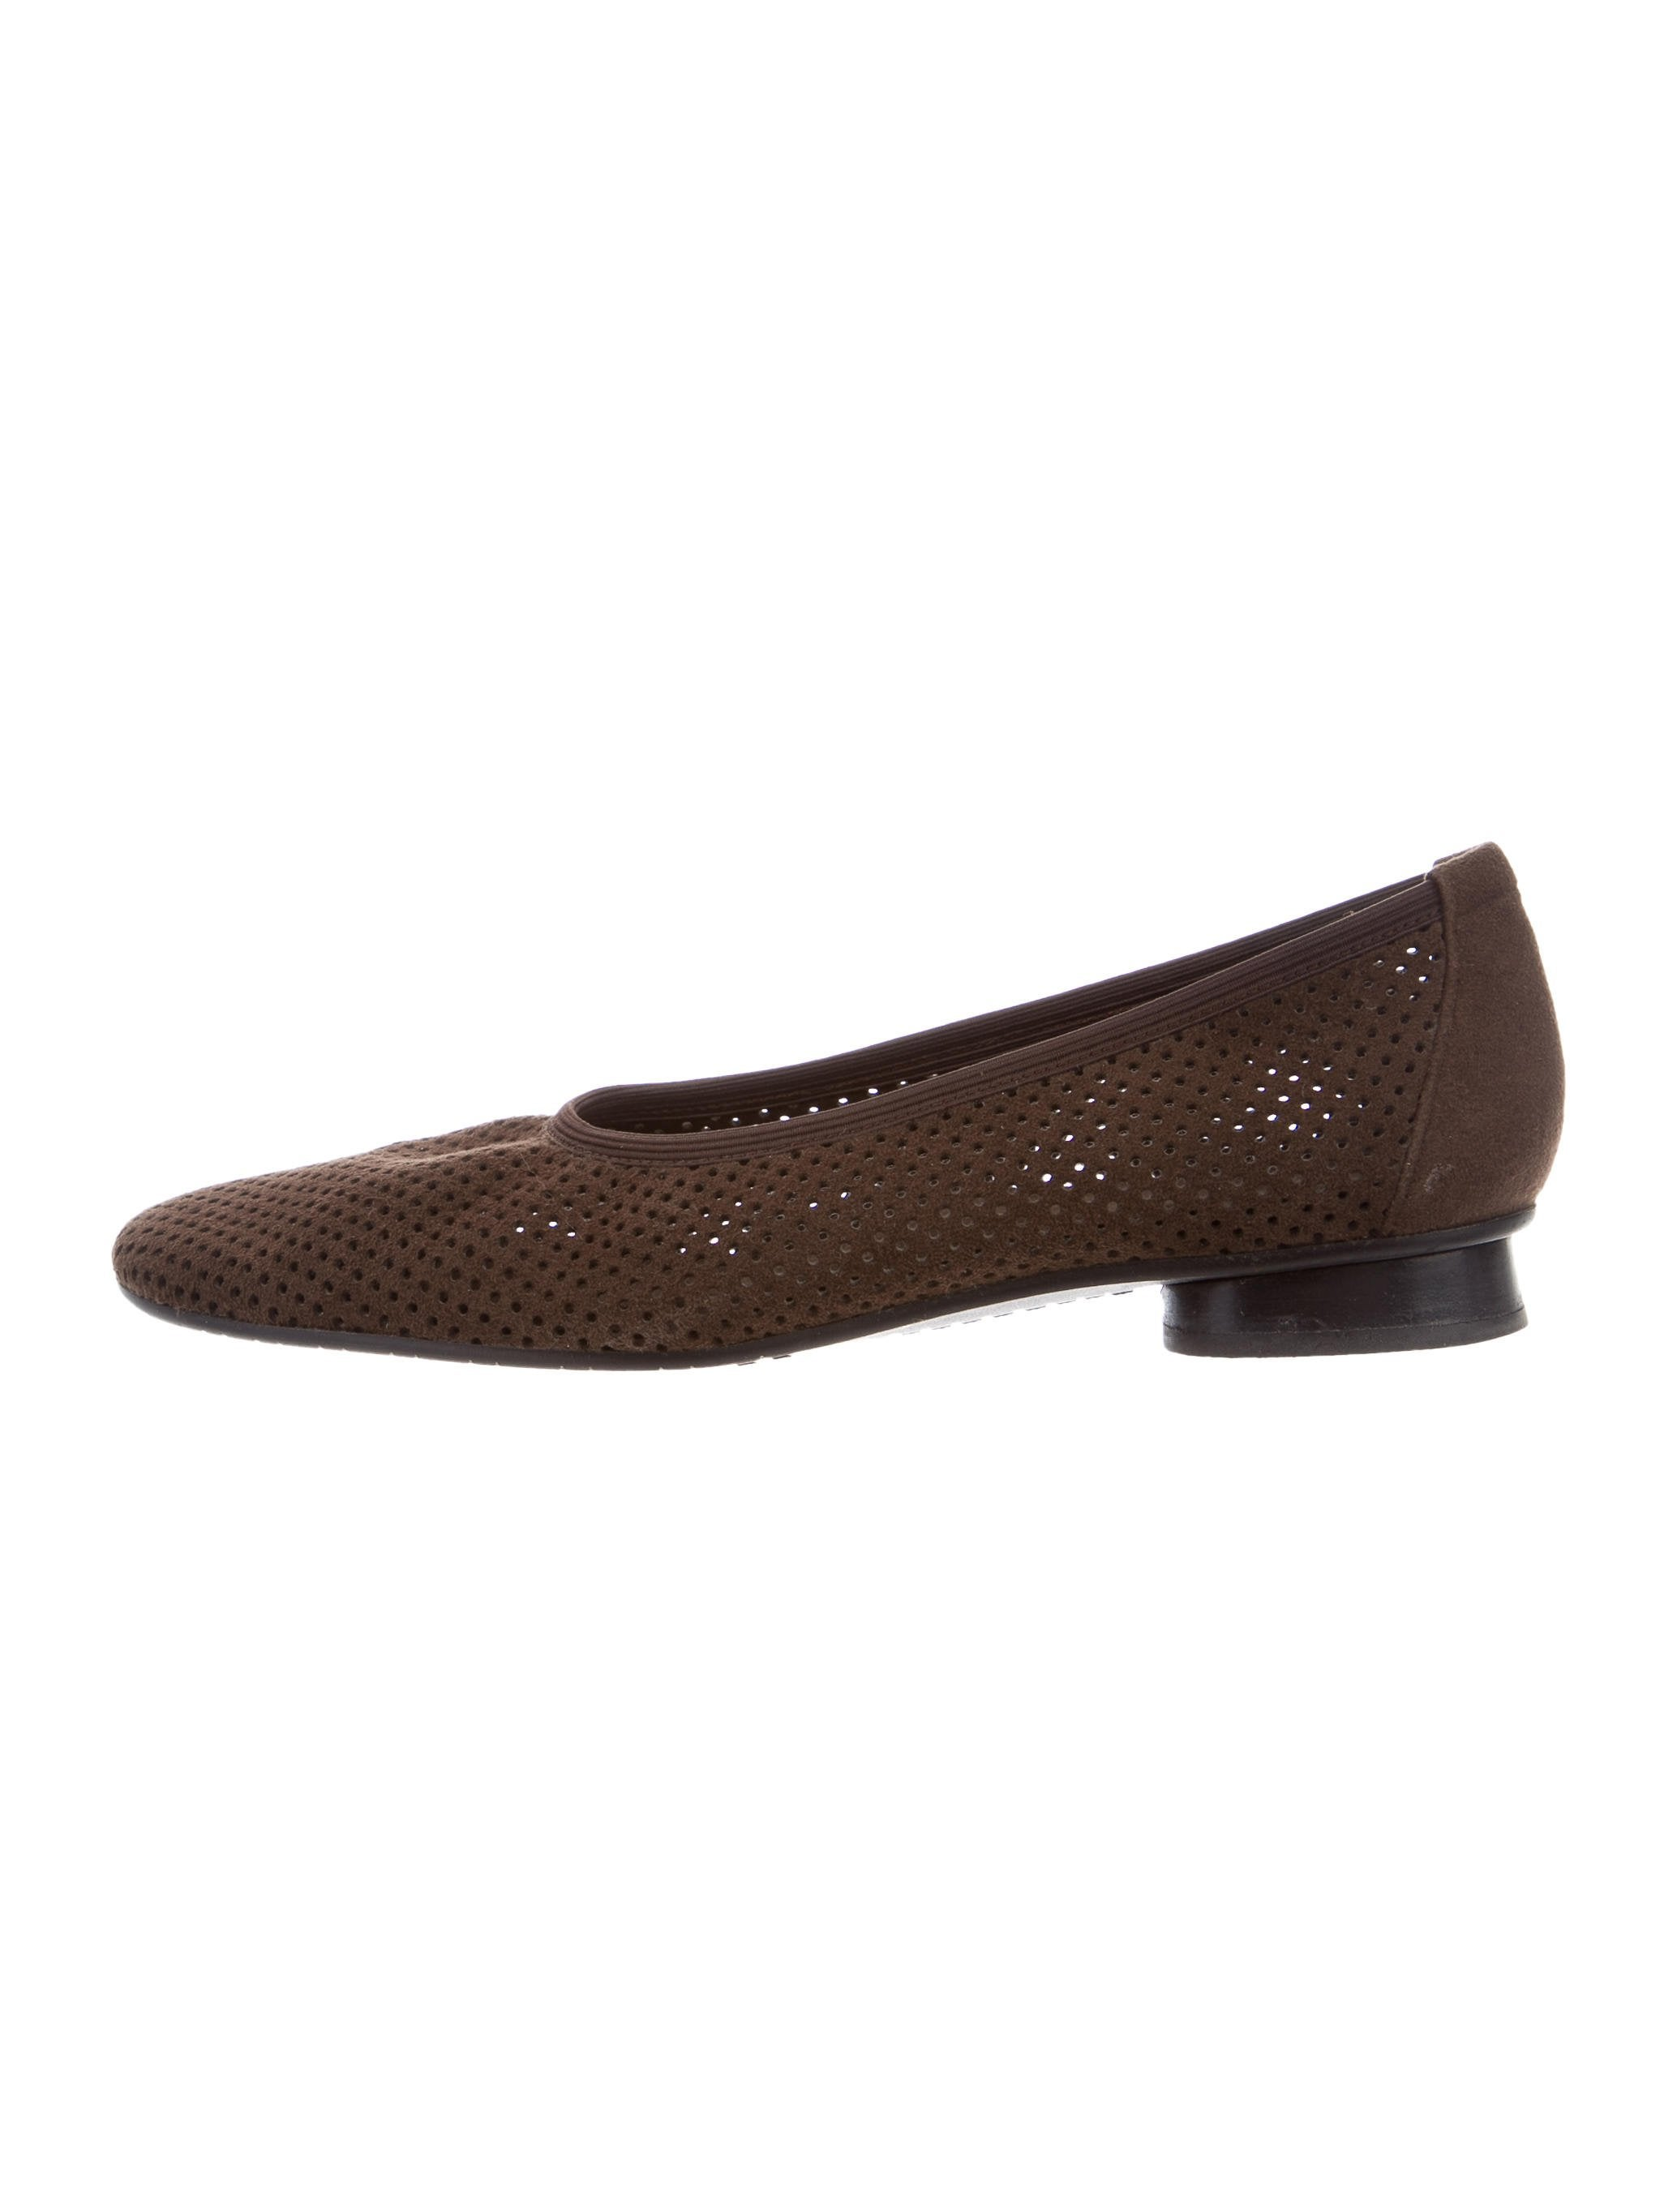 amazing price cheap price 2014 unisex for sale Stuart Weitzman Suede Perforate Flats low price sale online HOk3PVEYj